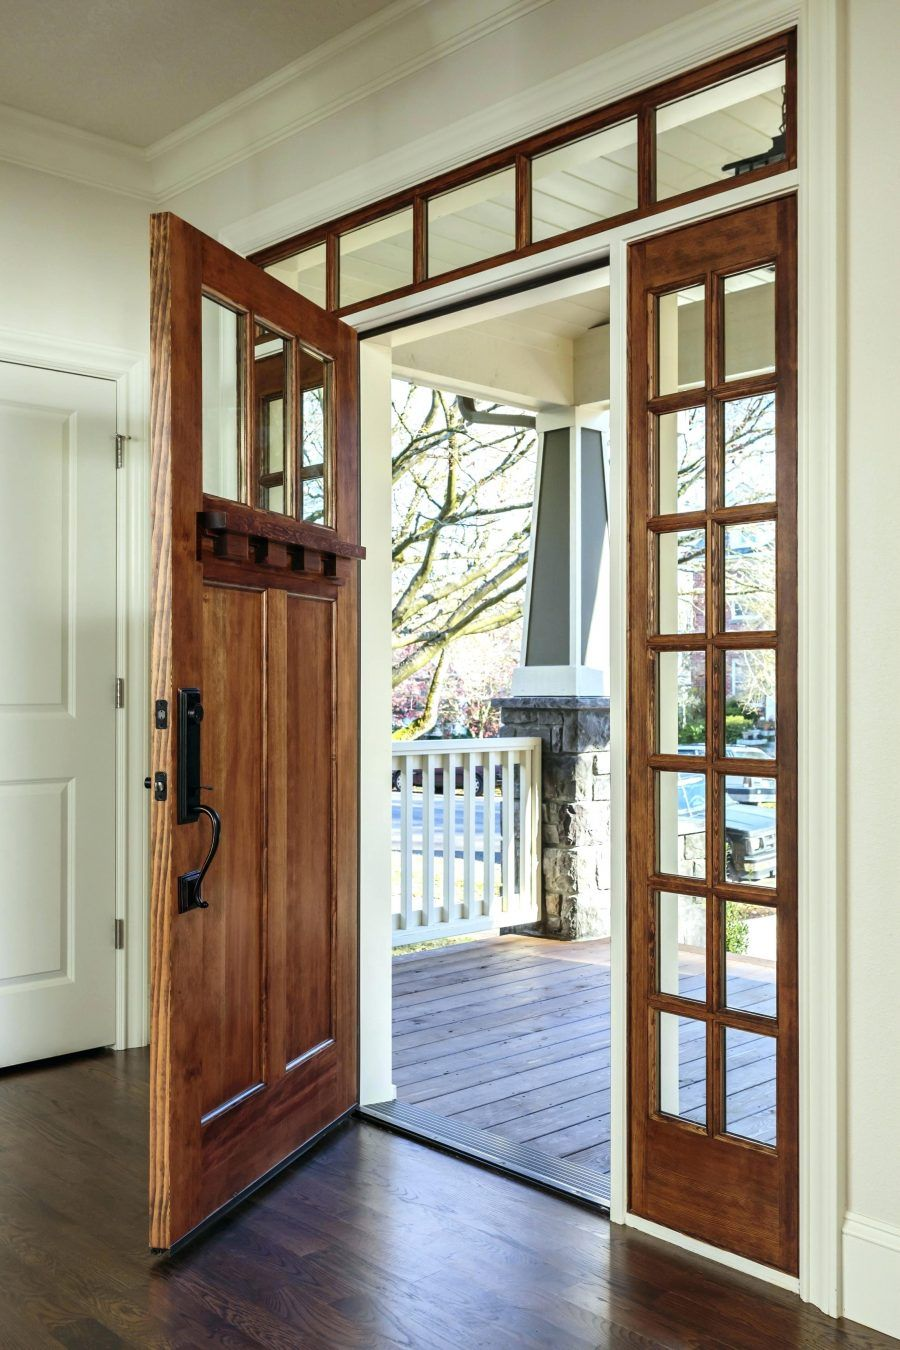 Lowes Exterior Doors : Shop exterior doors top brands at lowe's canada online store.